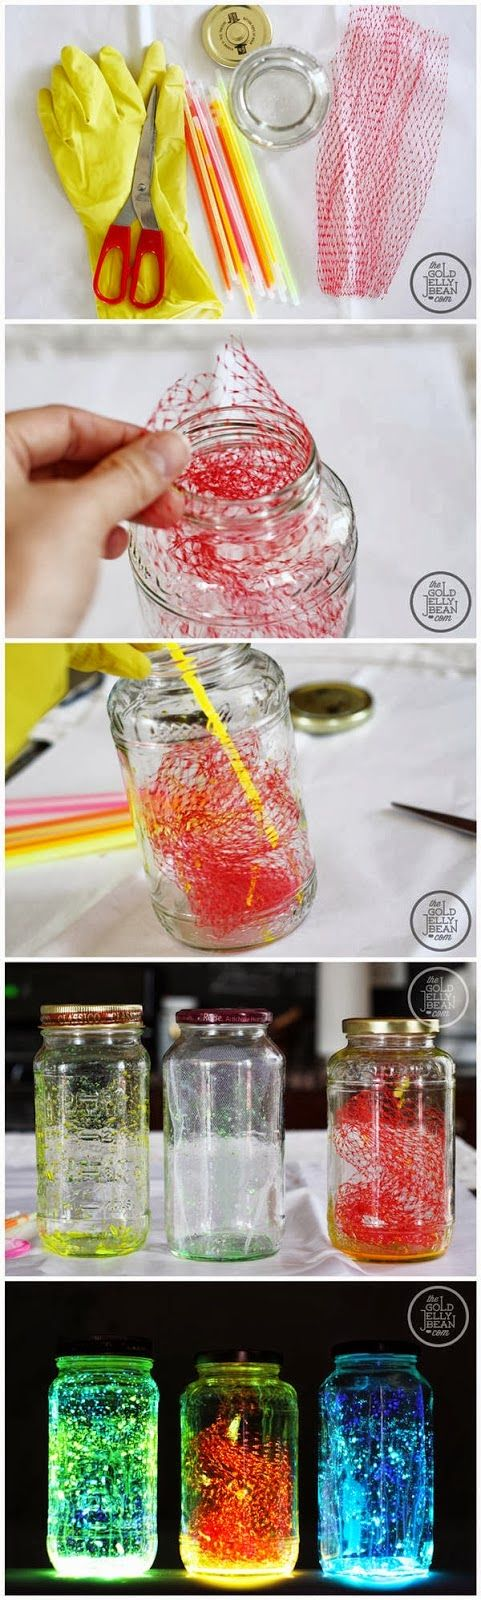 How To Make Glow Jars With Floating Colors